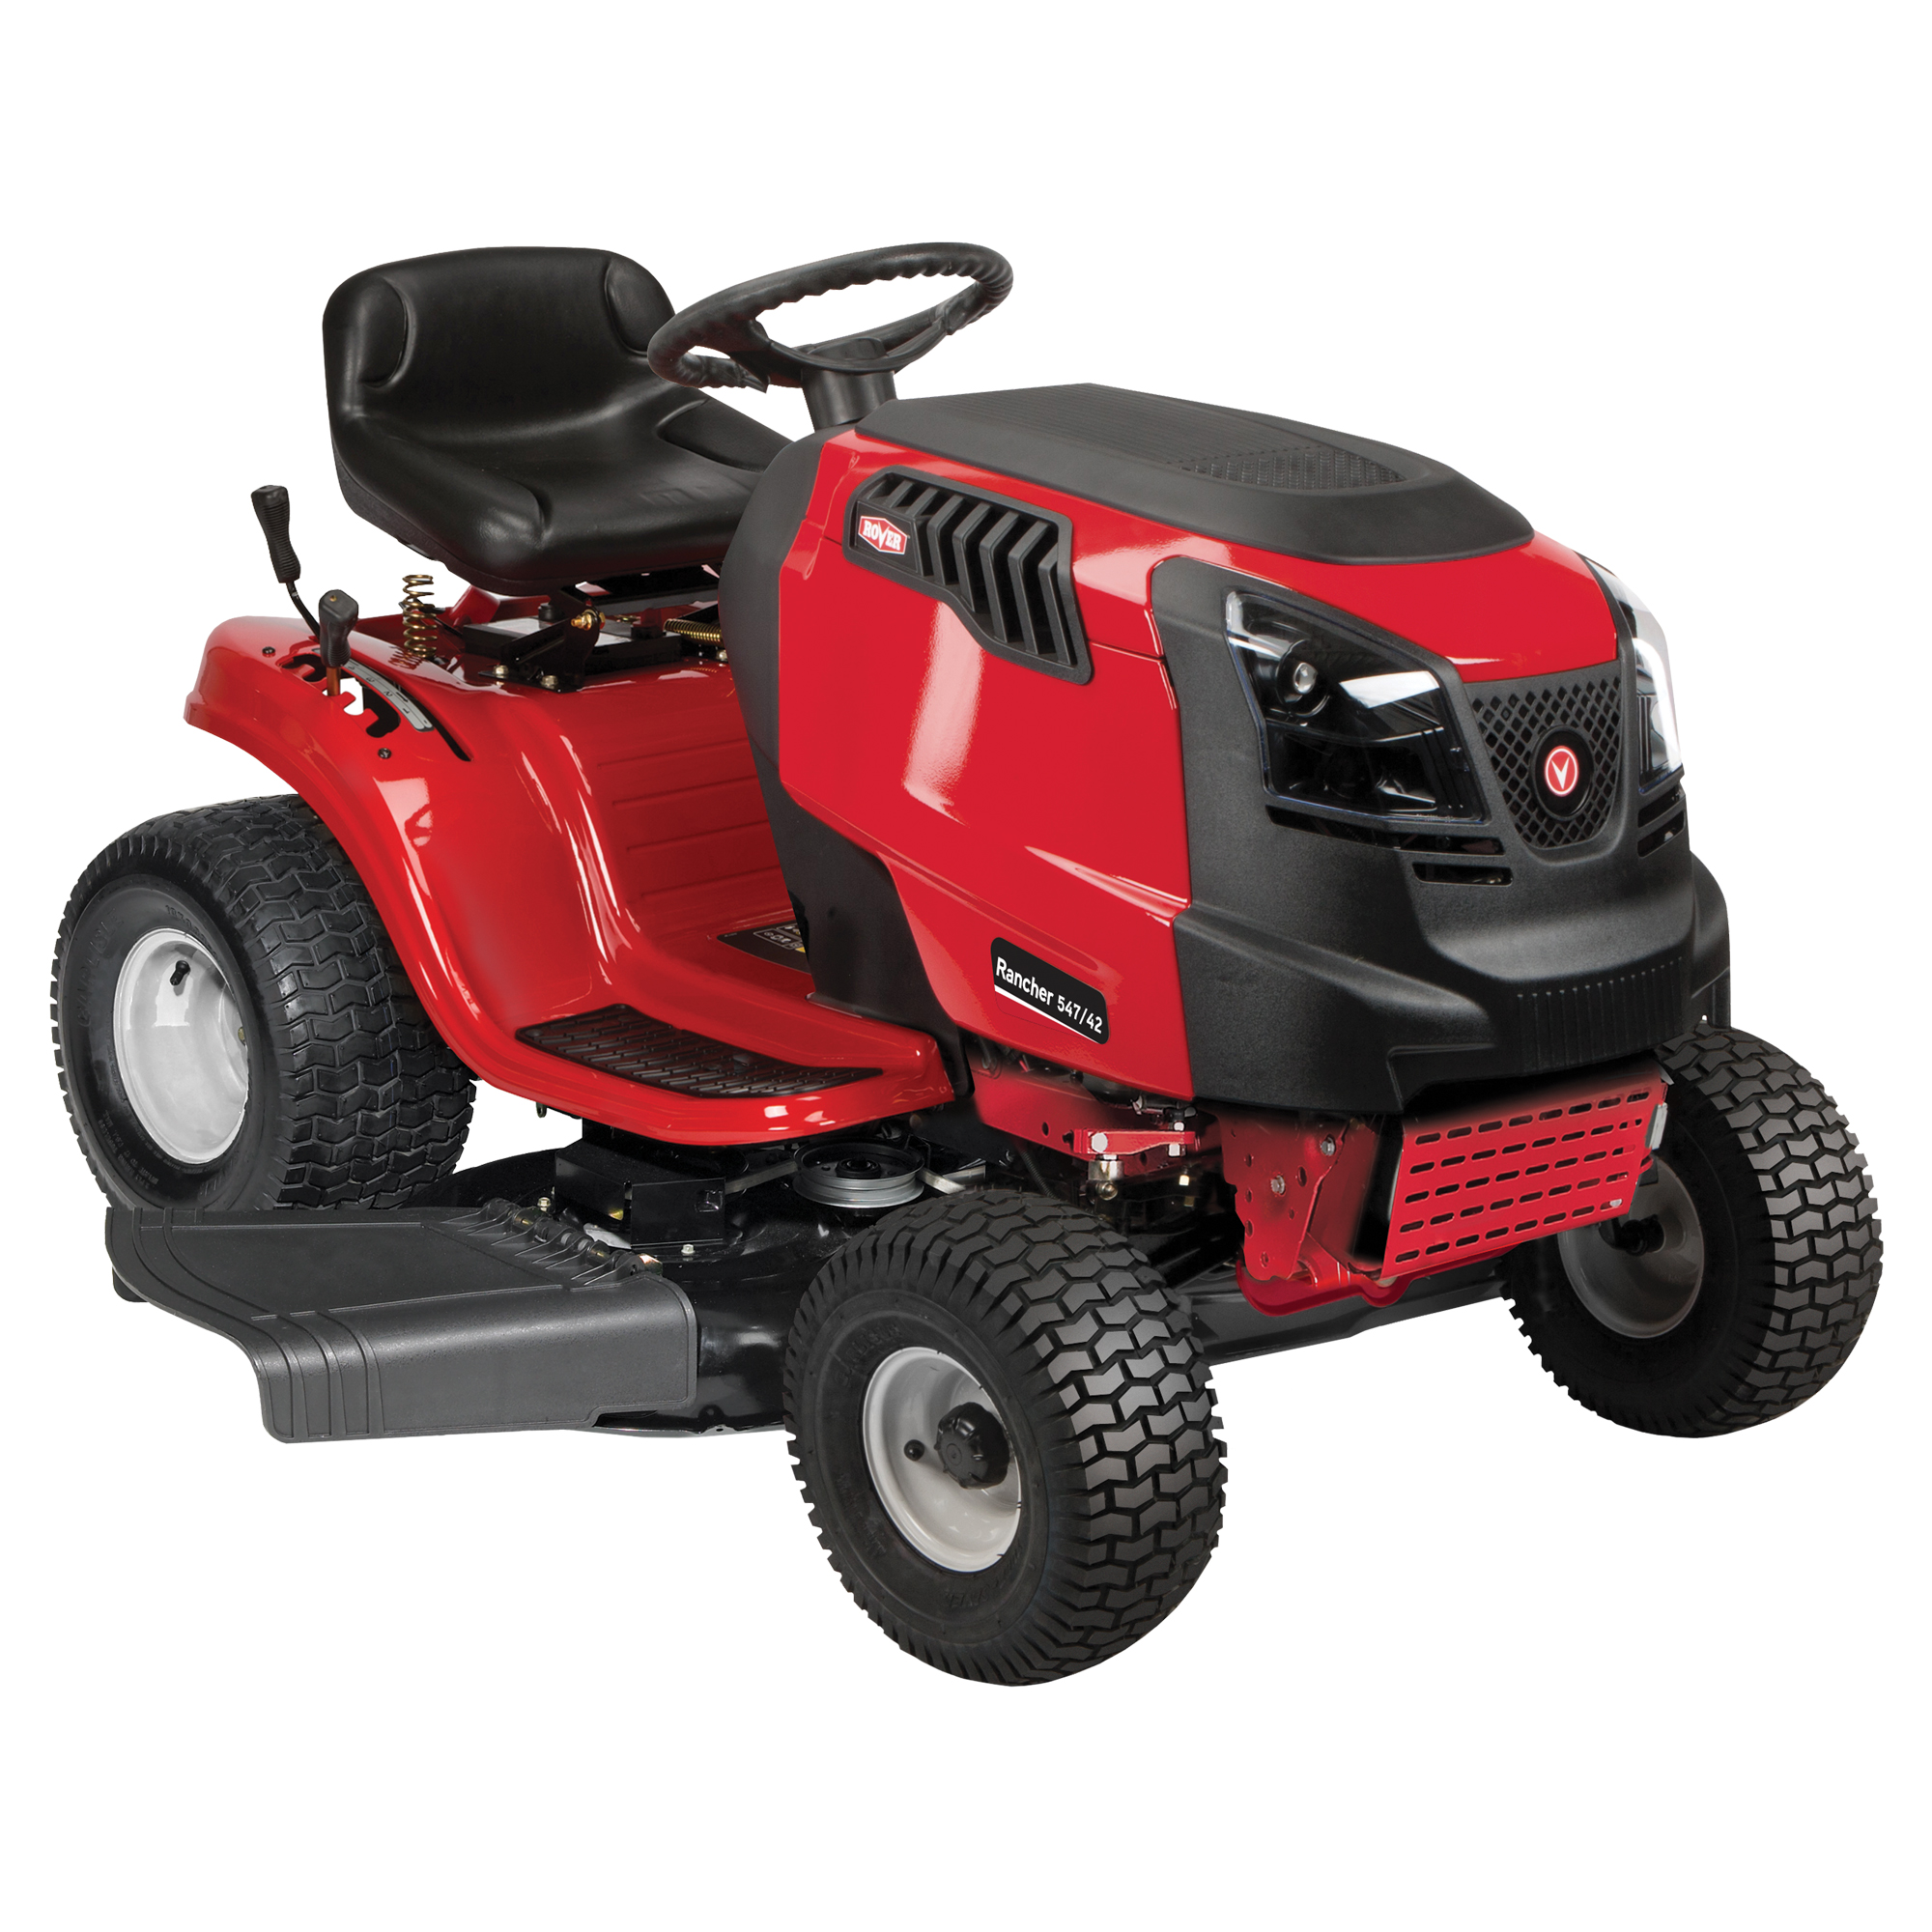 ROVER Ride-on Mowers